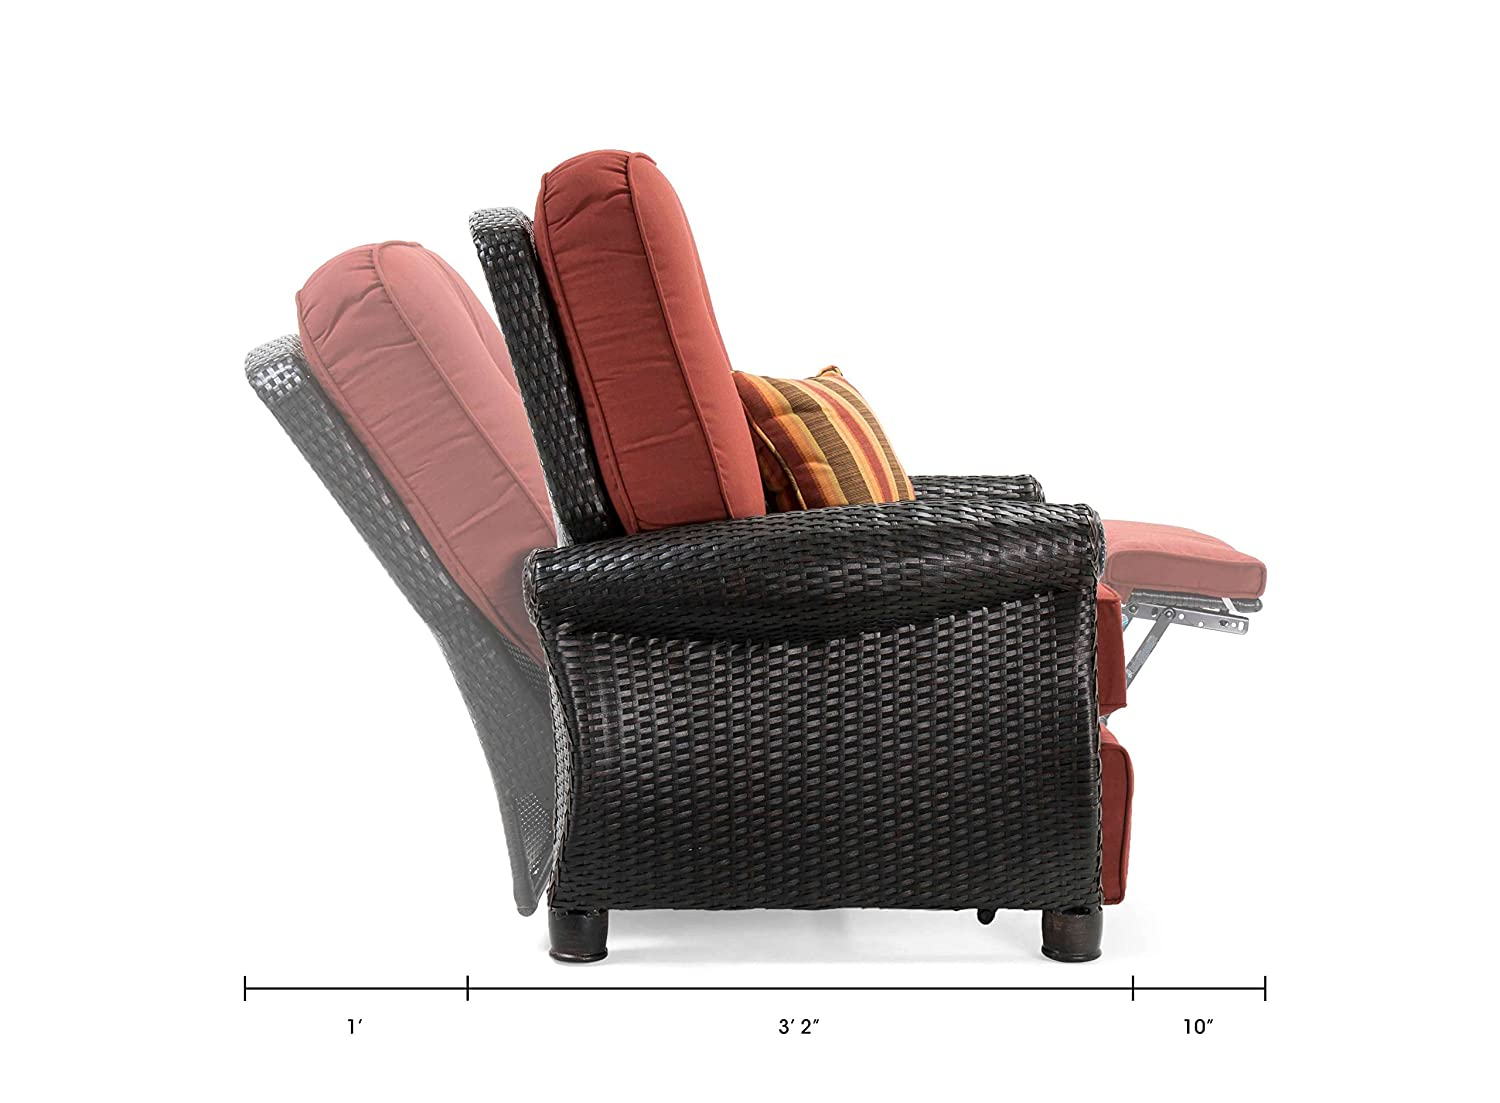 Brick Red La-Z-Boy Outdoor Breckenridge 3 Piece Resin Wicker Patio Furniture Set 2 Recliners and Side Table with All Weather Sunbrella Cushions